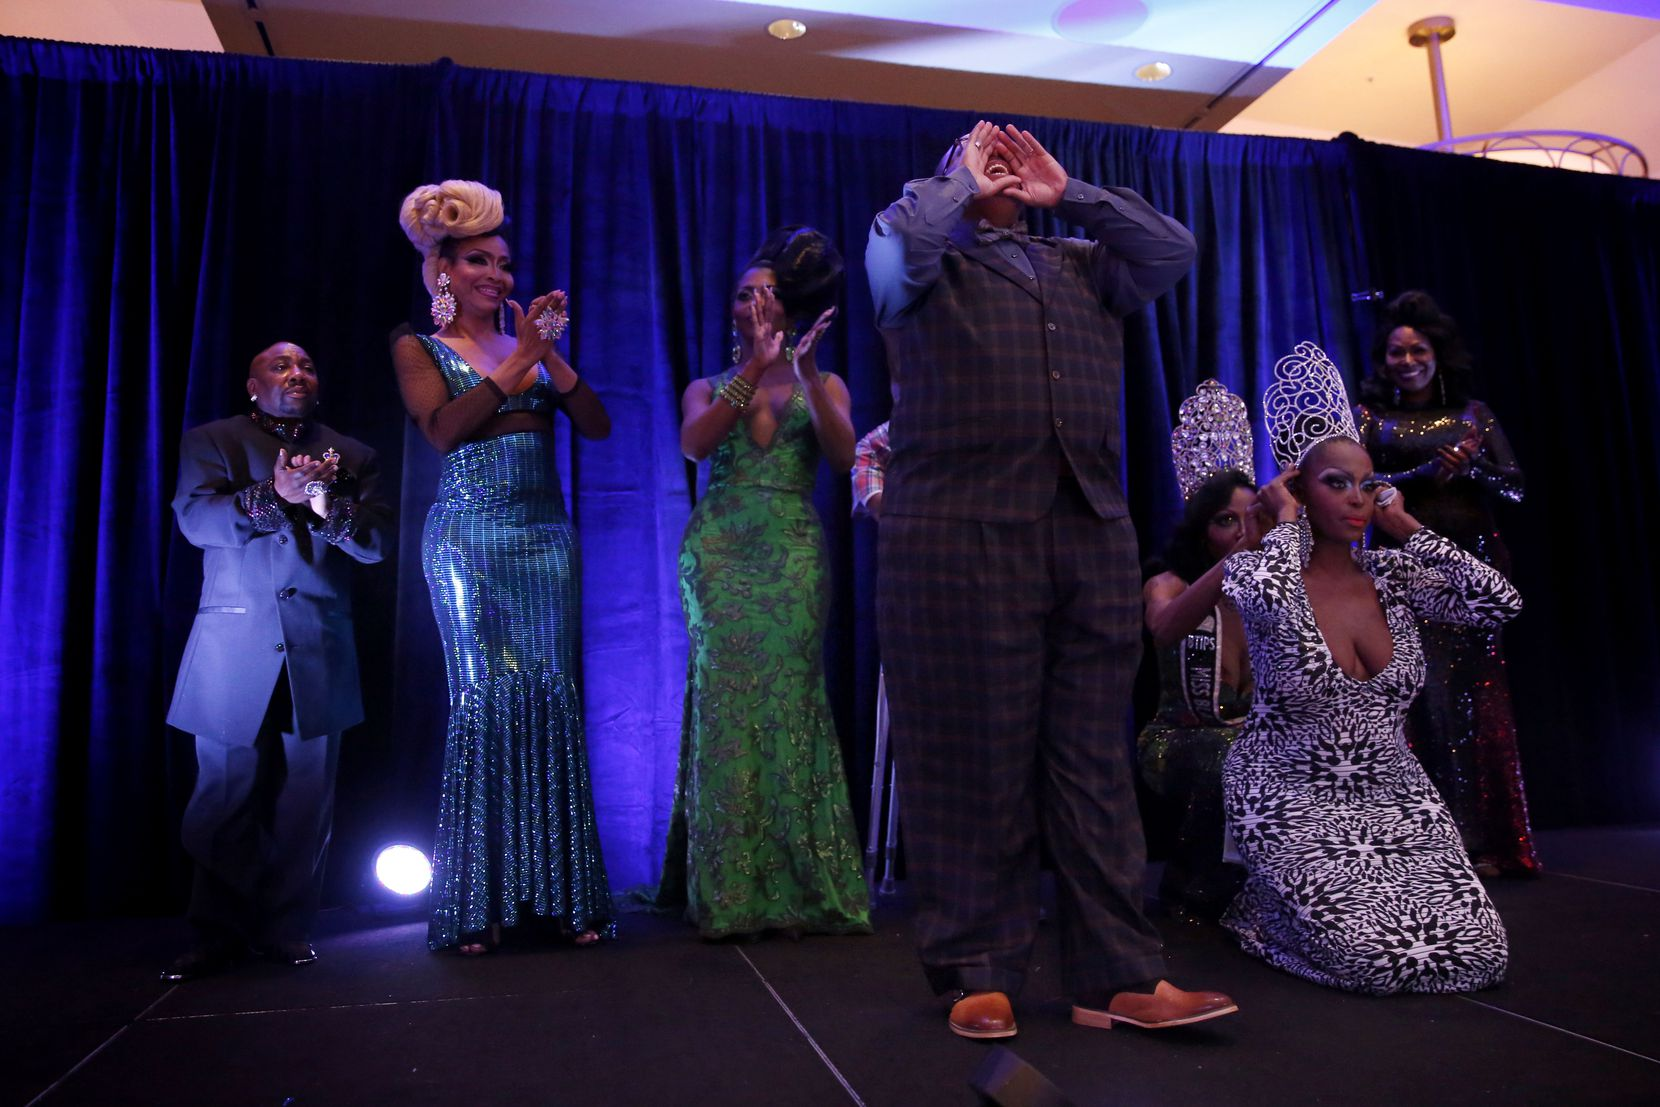 Trenton Johnson yells to the crowd upon winning the Mr. Black Trans International title in the Mr. and Miss Black Trans International Pageant at the Dallas/Addison Marriott Quorum by the Galleria in Dallas on Thursday, April 27, 2017.